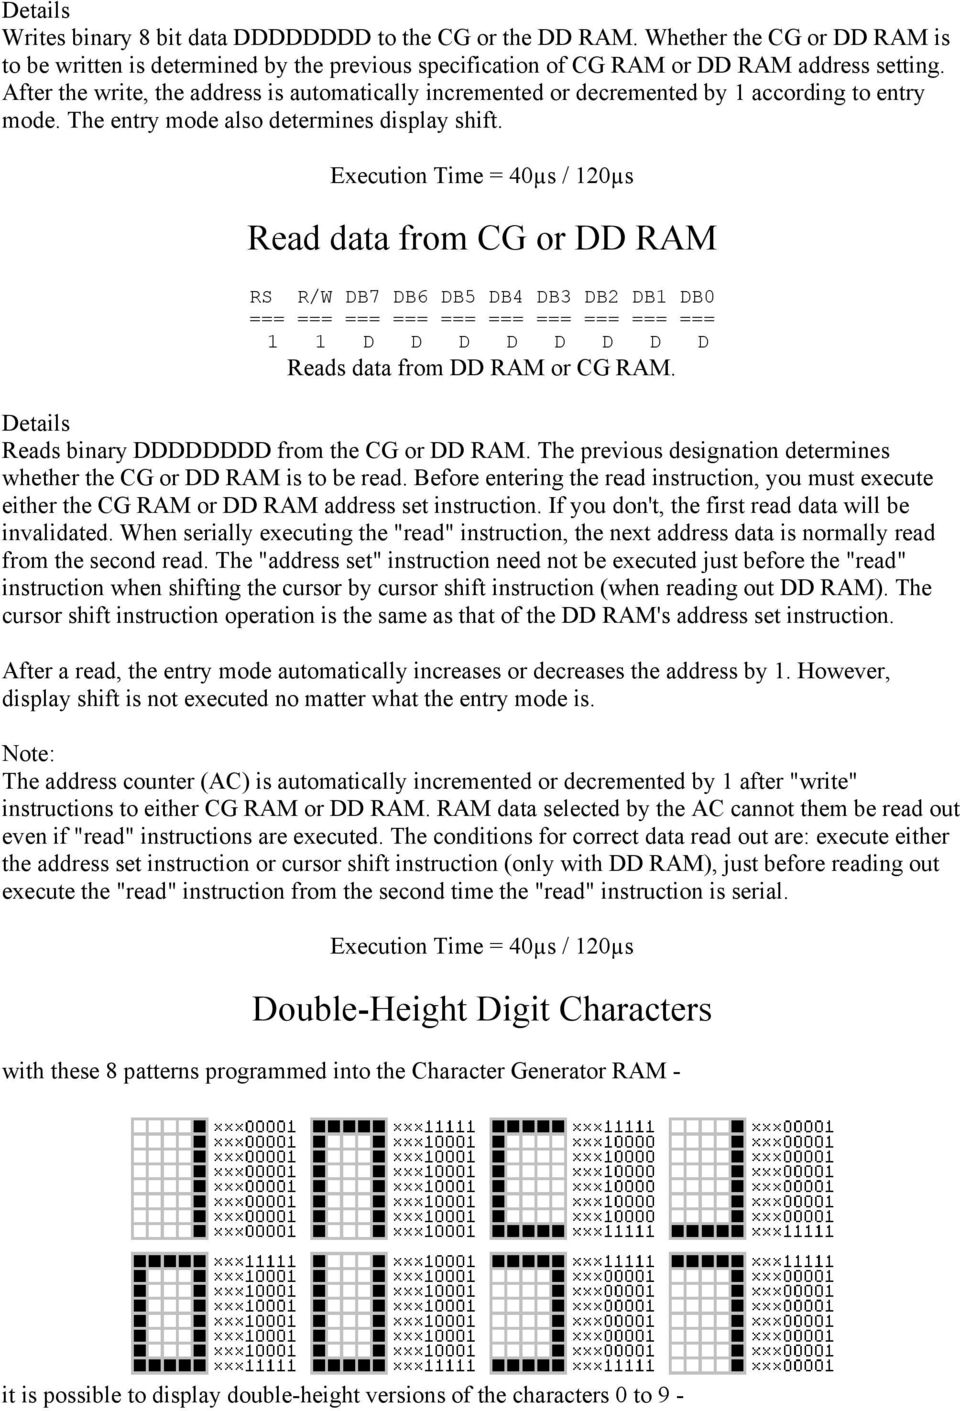 Read data from CG or DD RAM 1 1 D D D D D D D D Reads data from DD RAM or CG RAM. Reads binary DDDDDDDD from the CG or DD RAM.